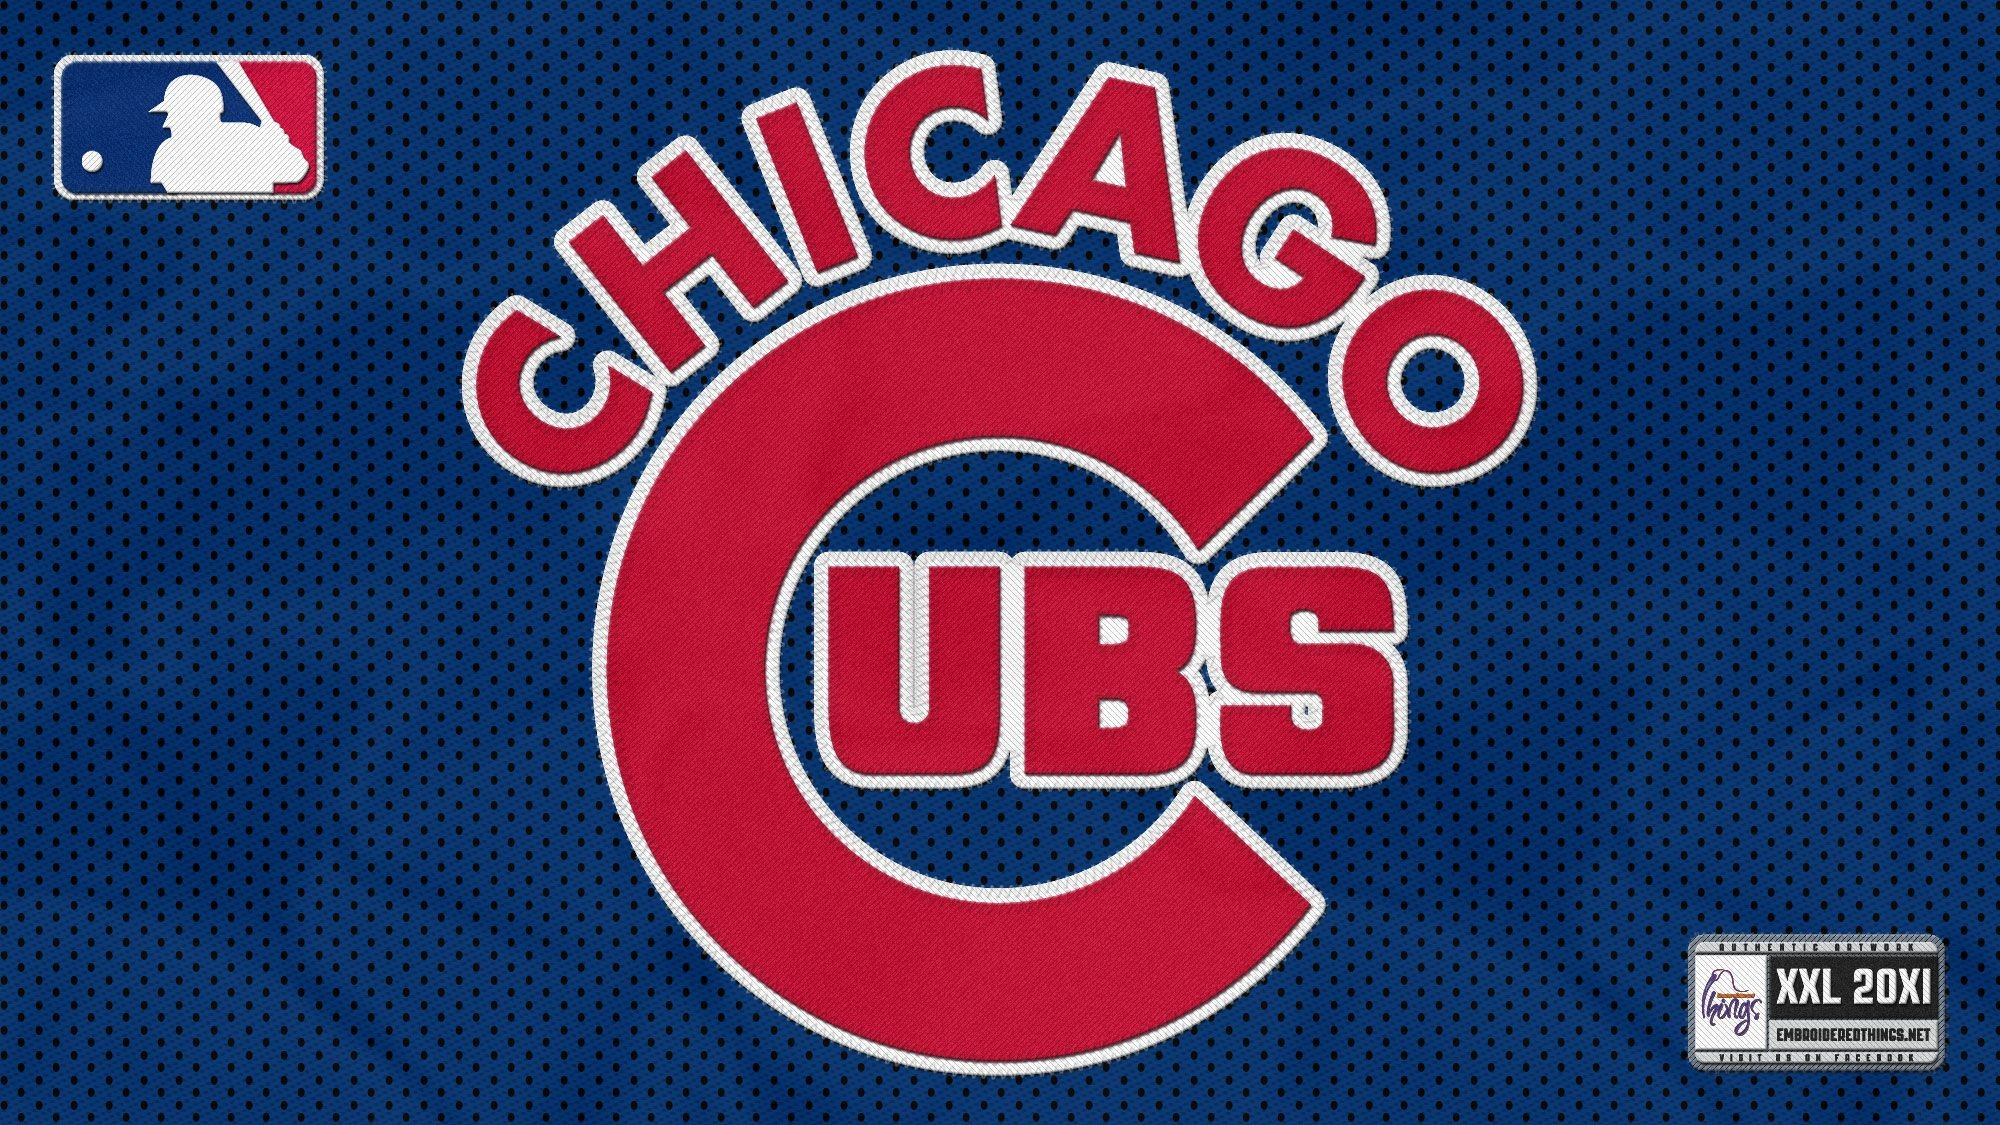 2000x1125 Chicago Cubs Screensavers Pictures, Images & Photos .